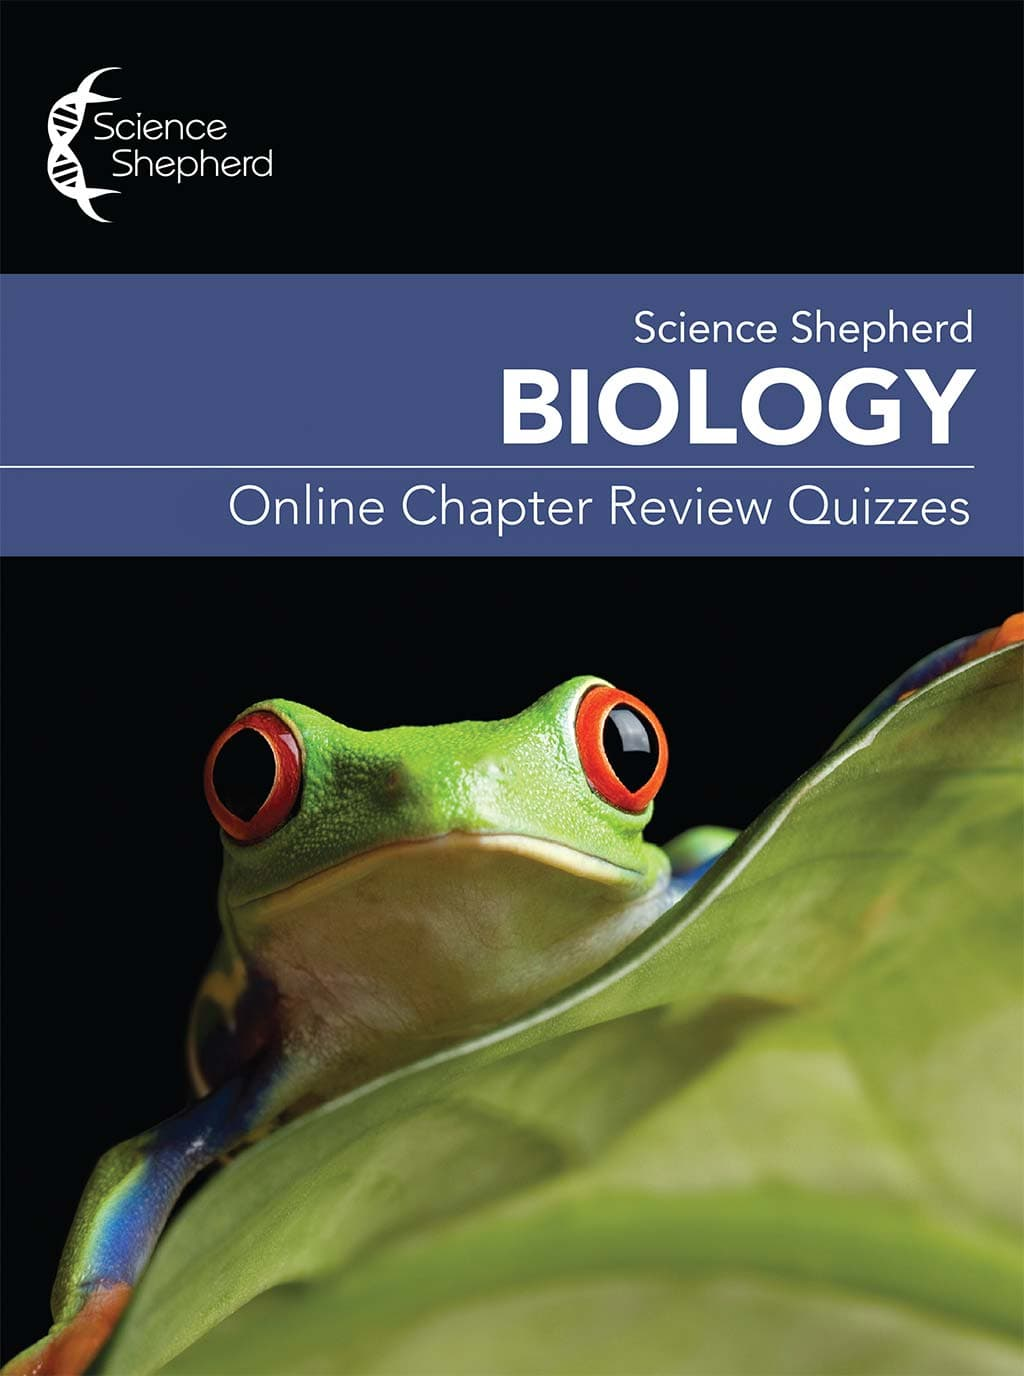 Science Shepherd Biology Homeschool Curriculum online chapter review quizzes cover of frog